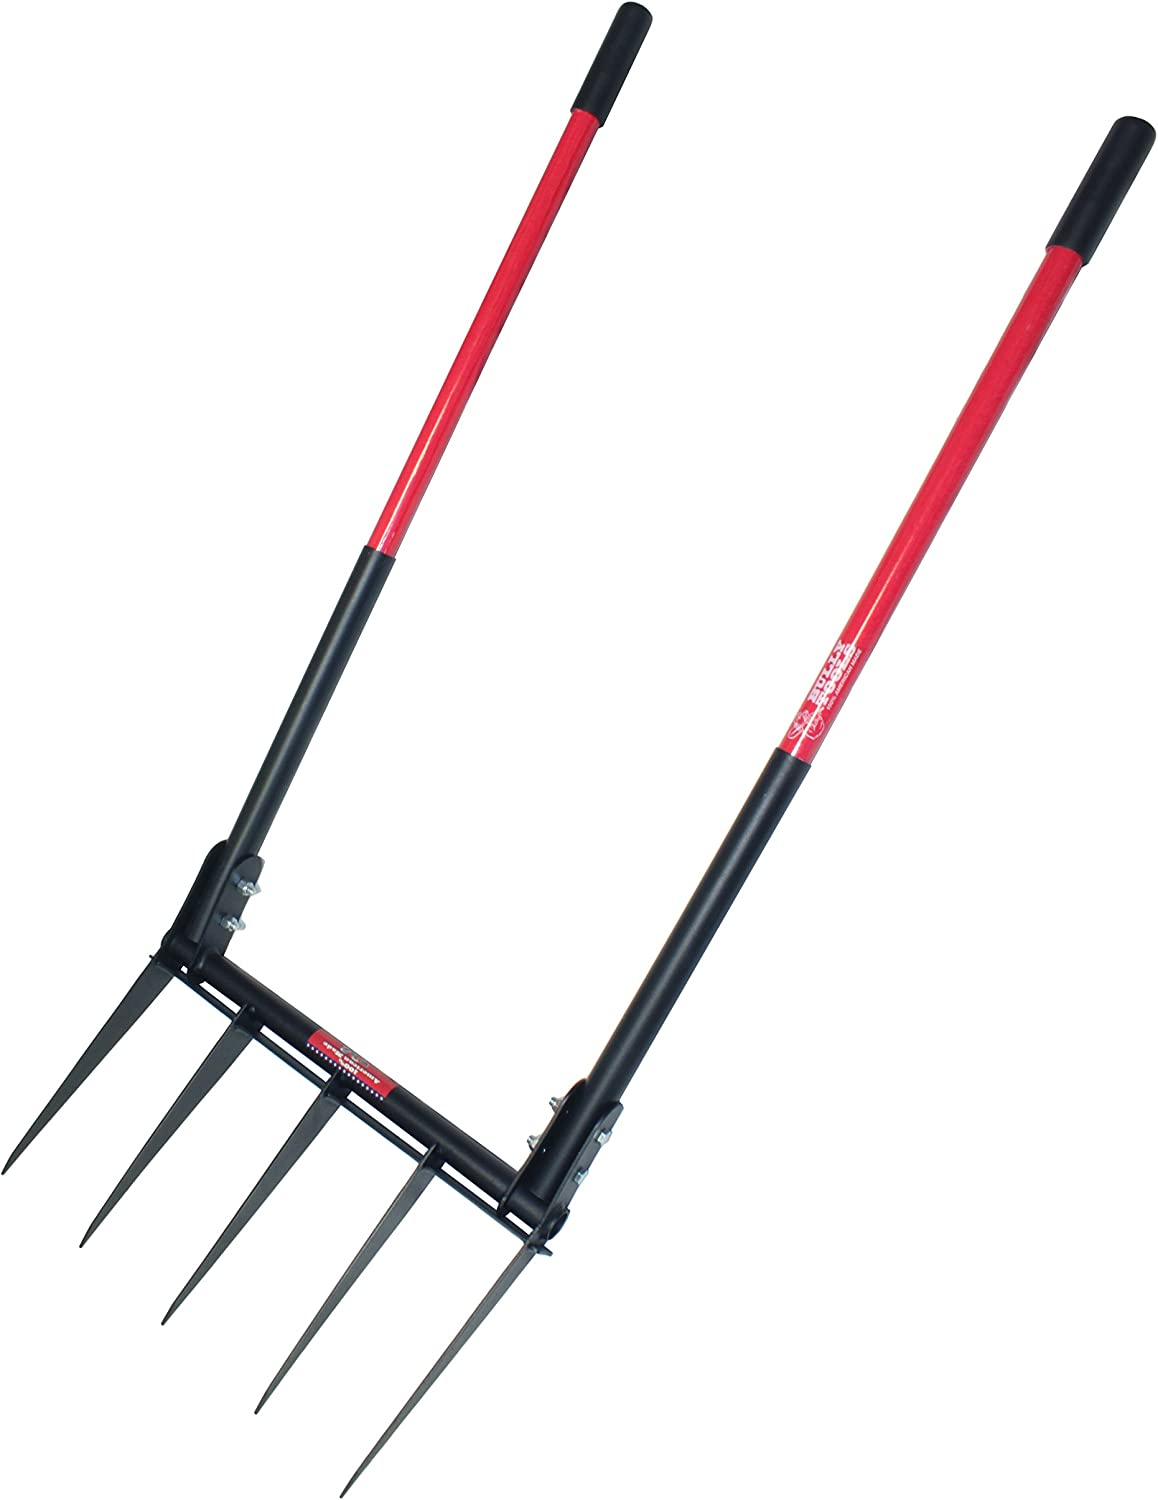 Bully Tools 92627 Broad Fork with Fiber Glass Handle